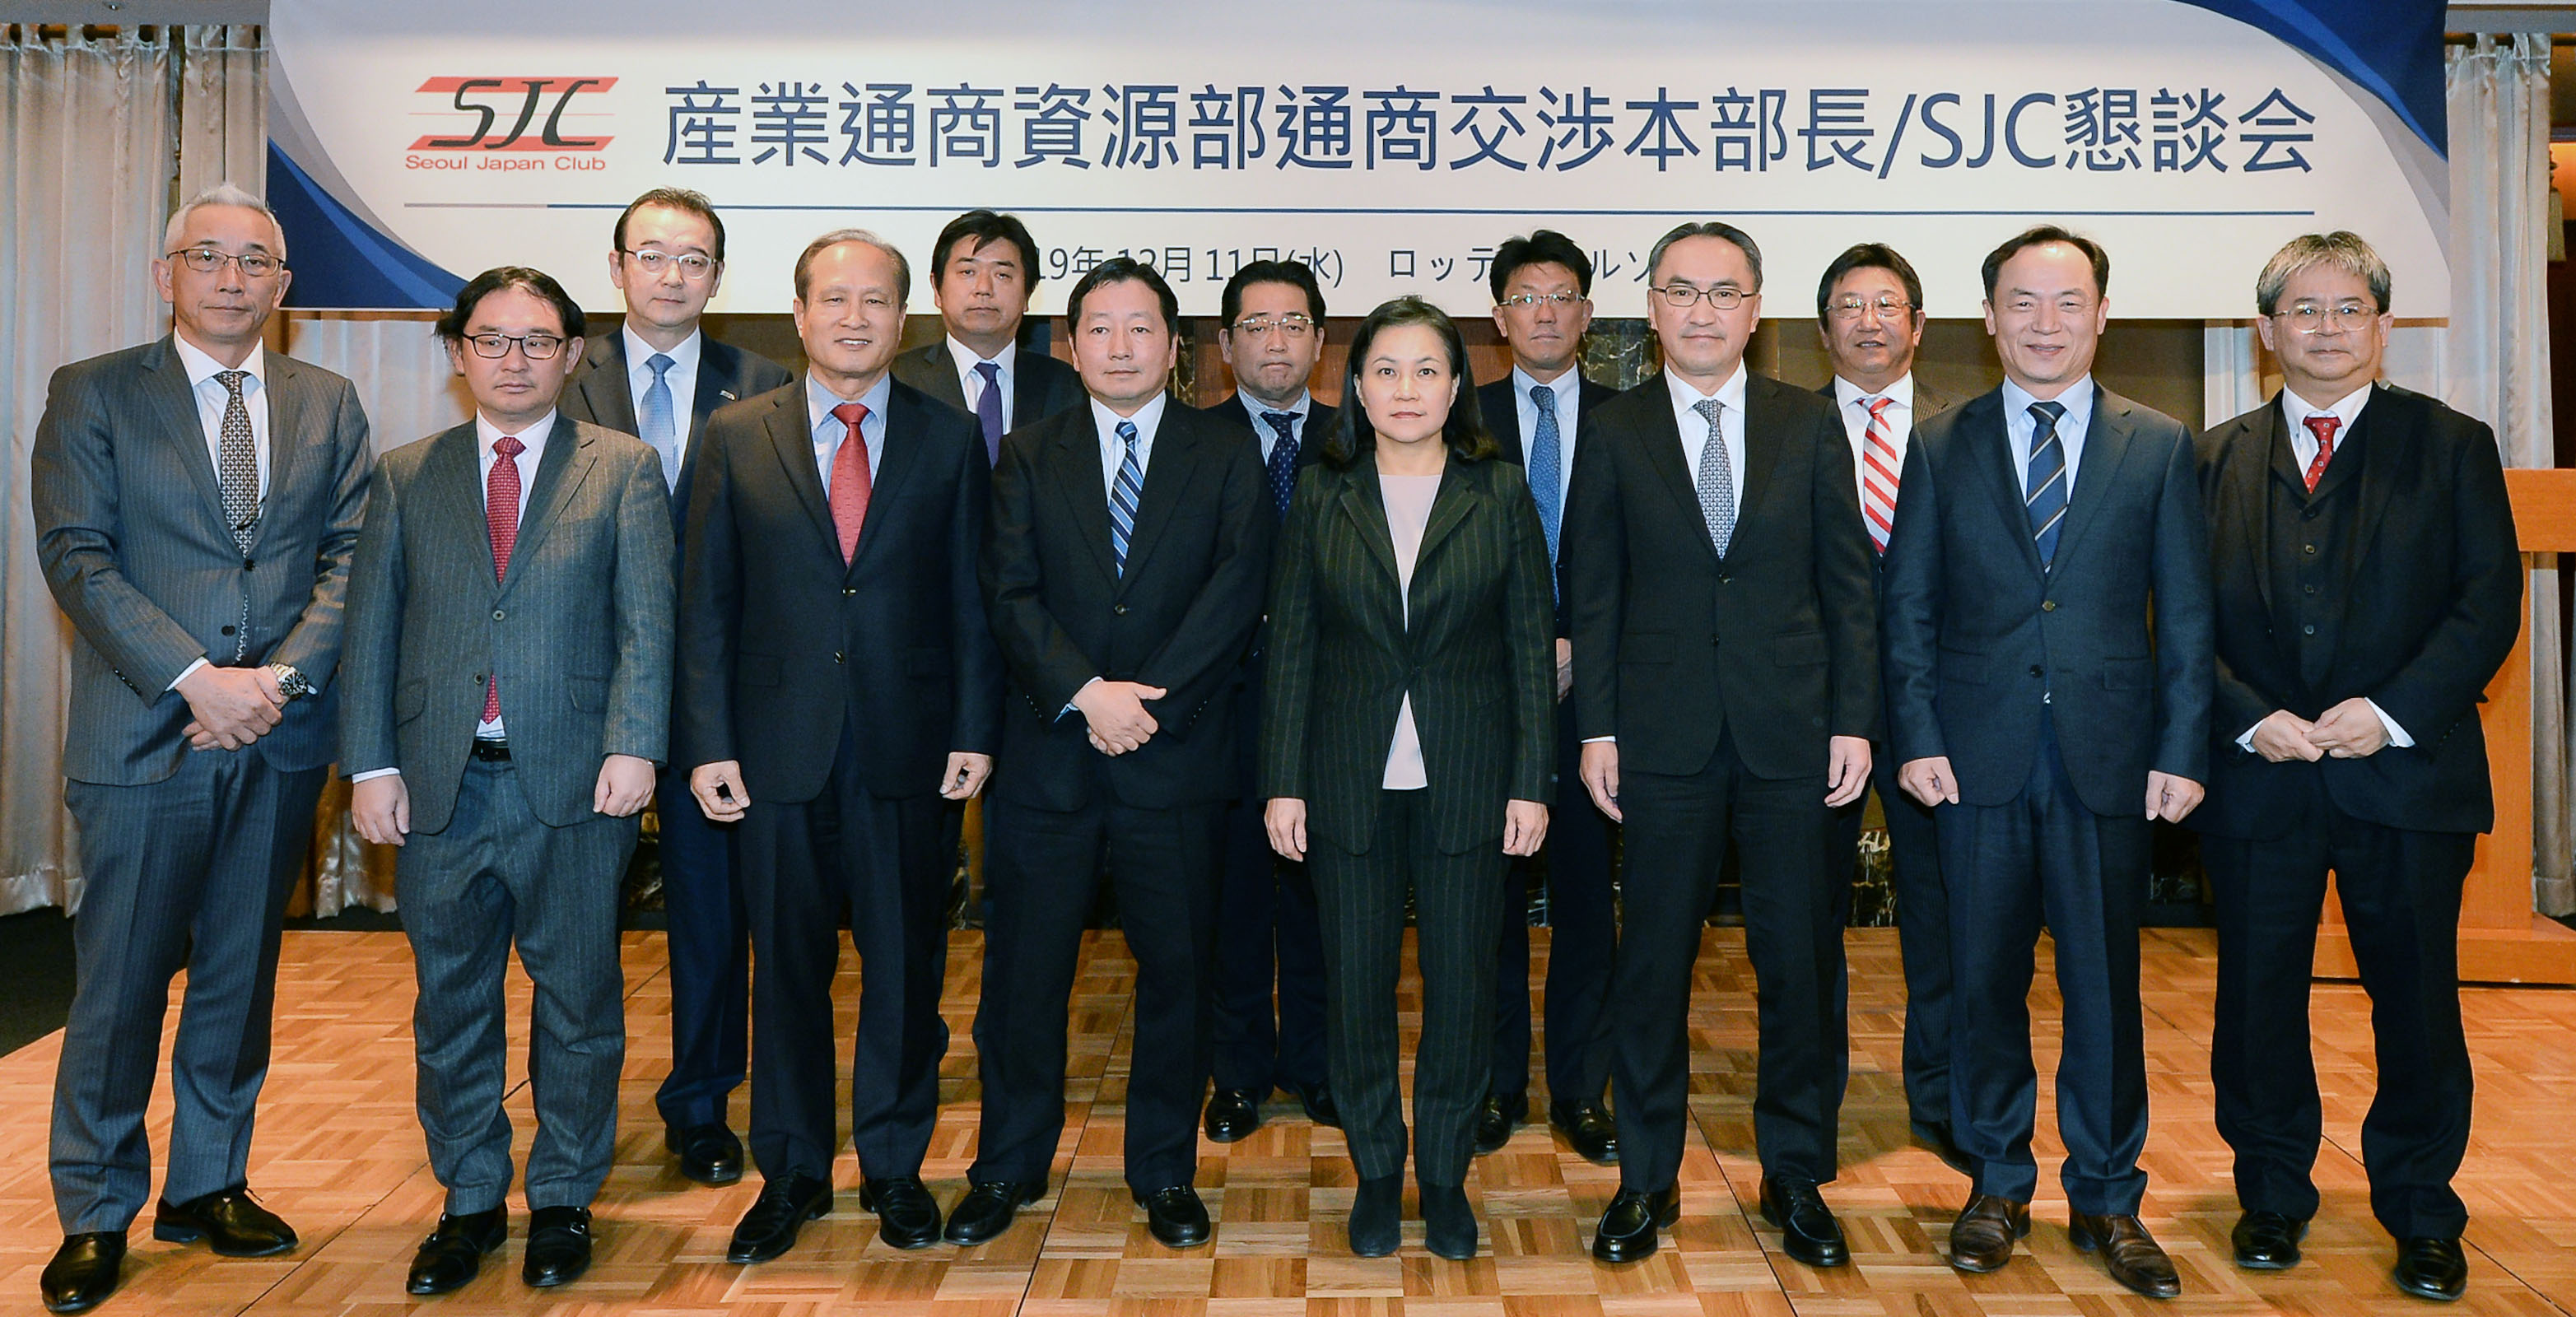 Trade Minister Yoo attends meeting held by Seoul Japan Club Image 0